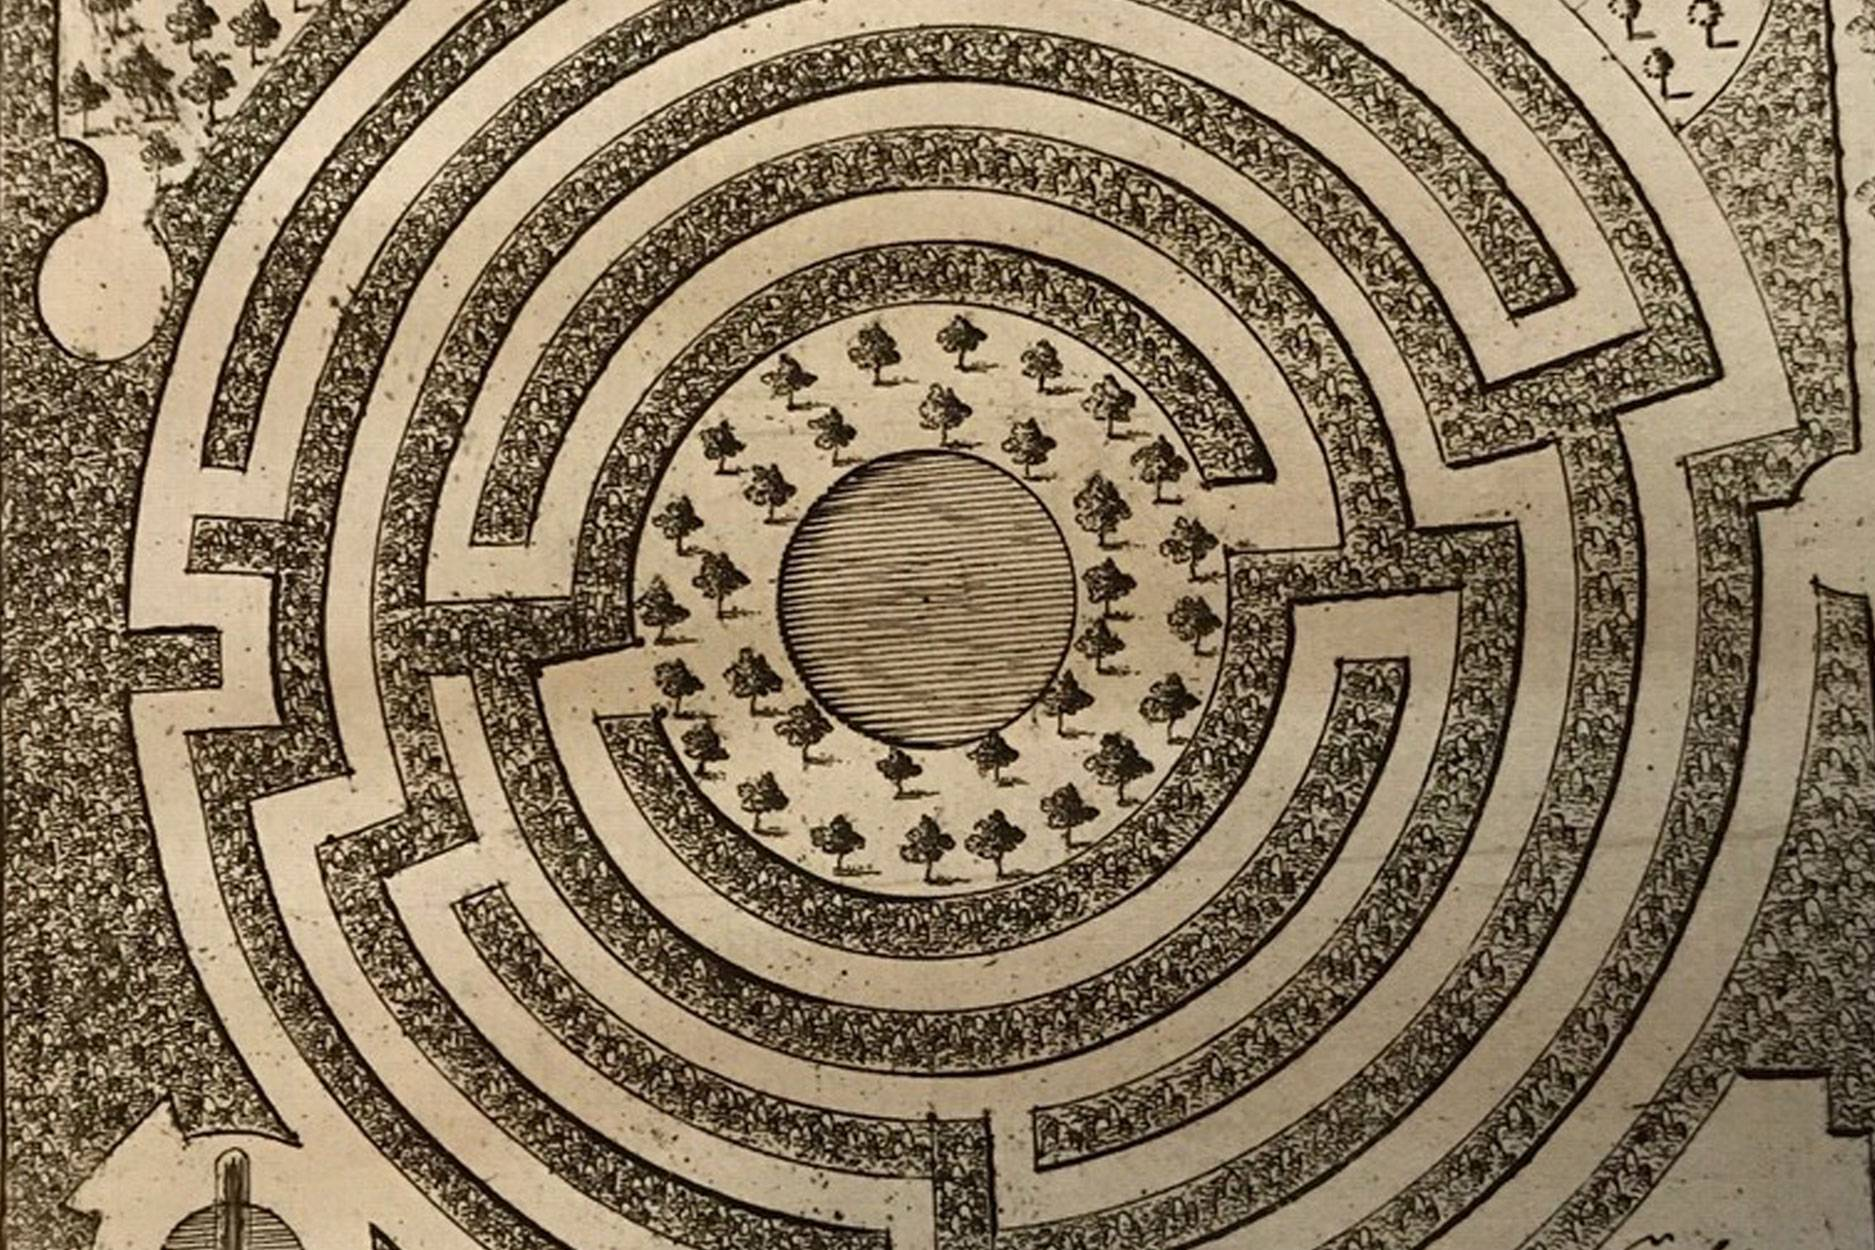 Maze design from the New Principles of Gardening by Batty Langley, published in 1728